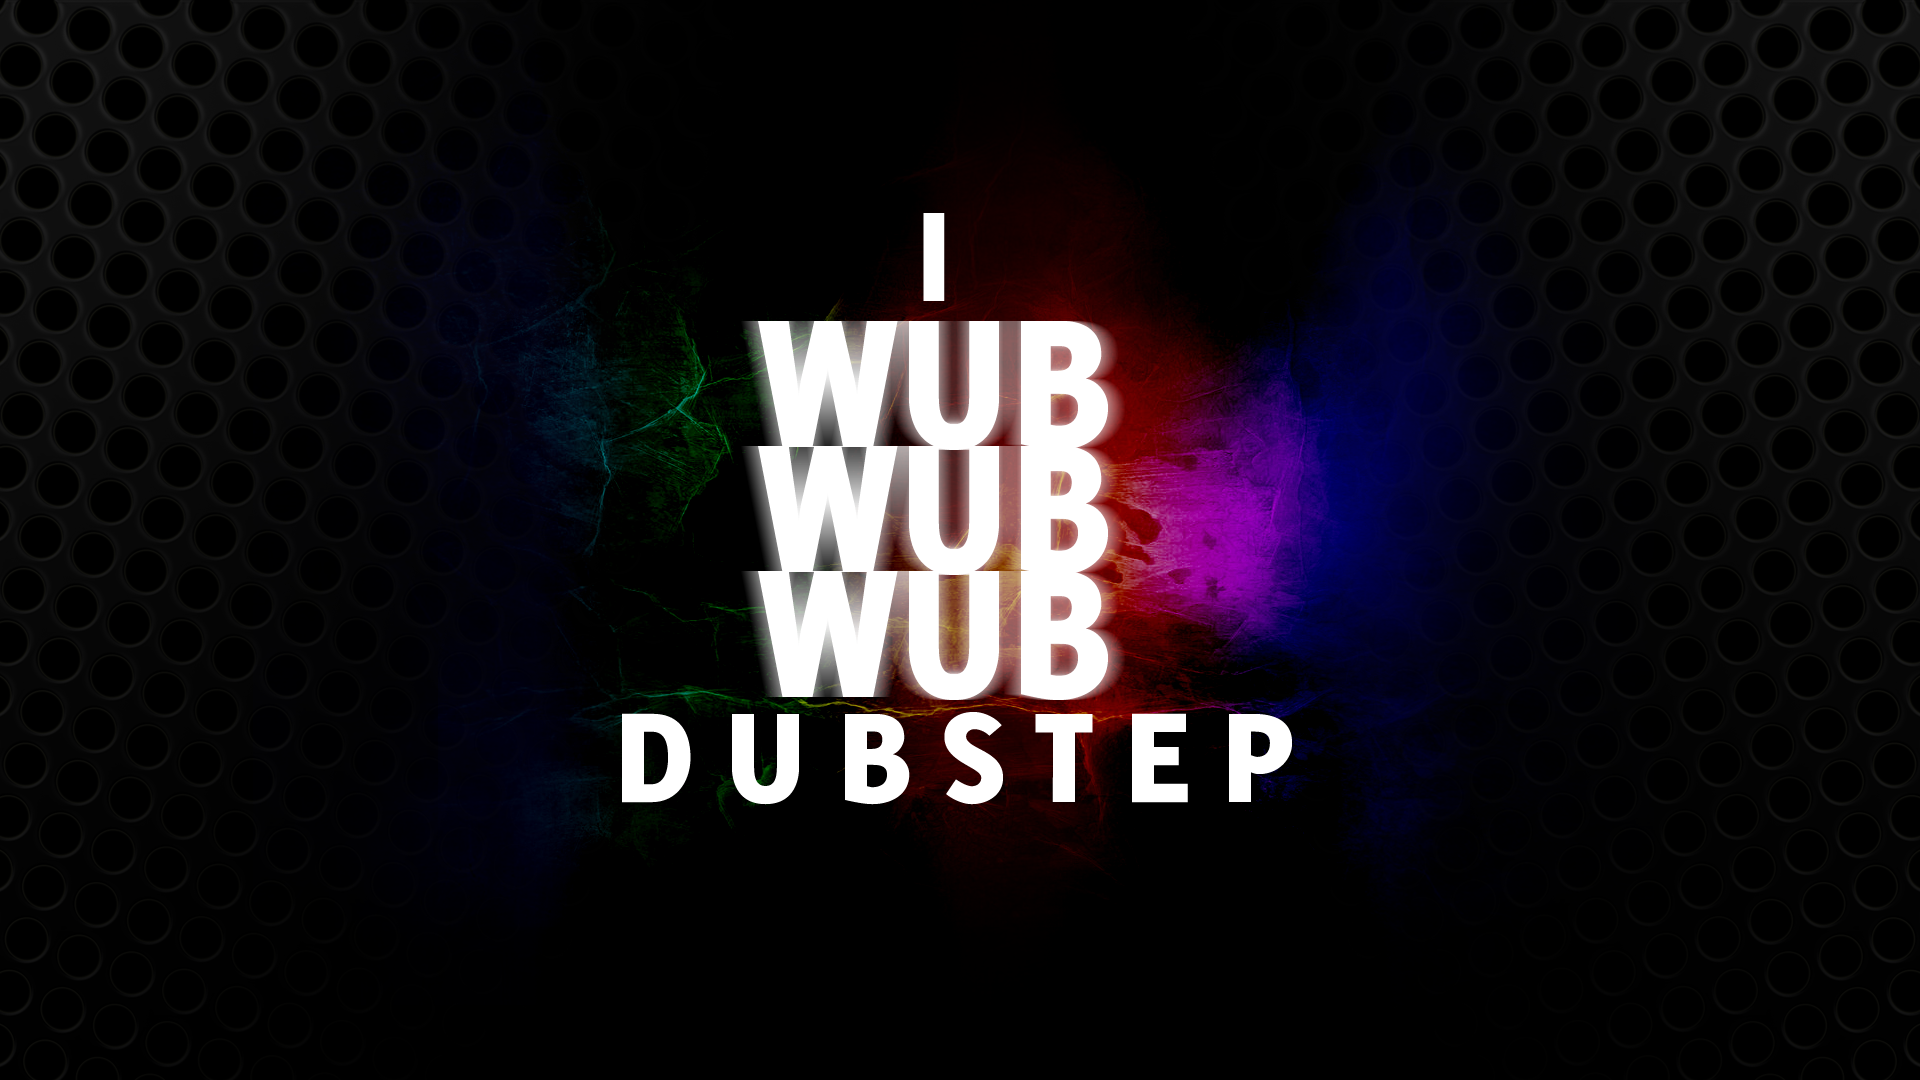 i wubwubwub dubstep wallpaper by owlion-d499ra3.png